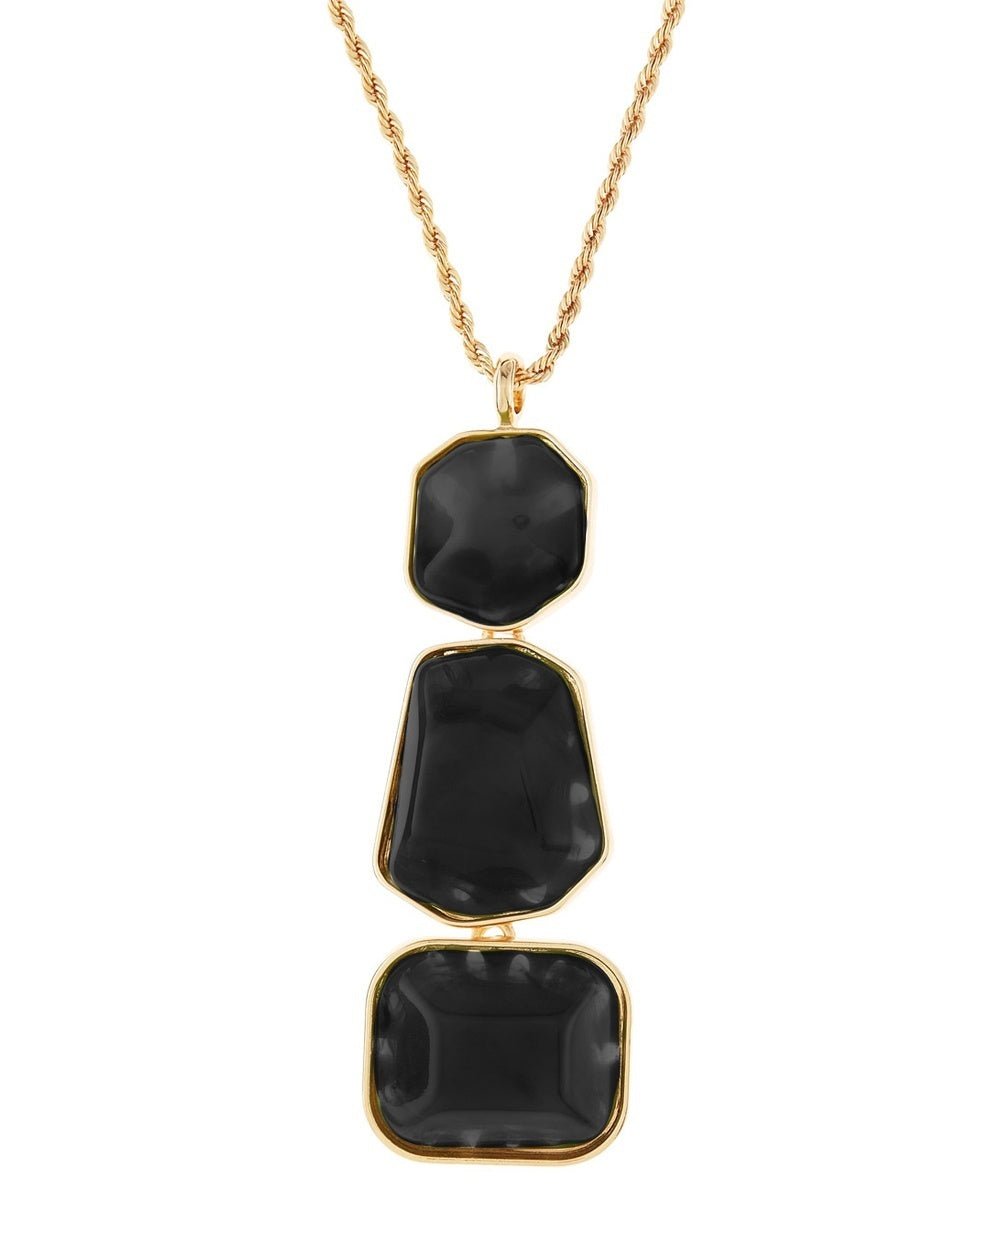 Kenneth jay lane three nugget pendant necklace the shopping bag three nugget pendant necklace aloadofball Images